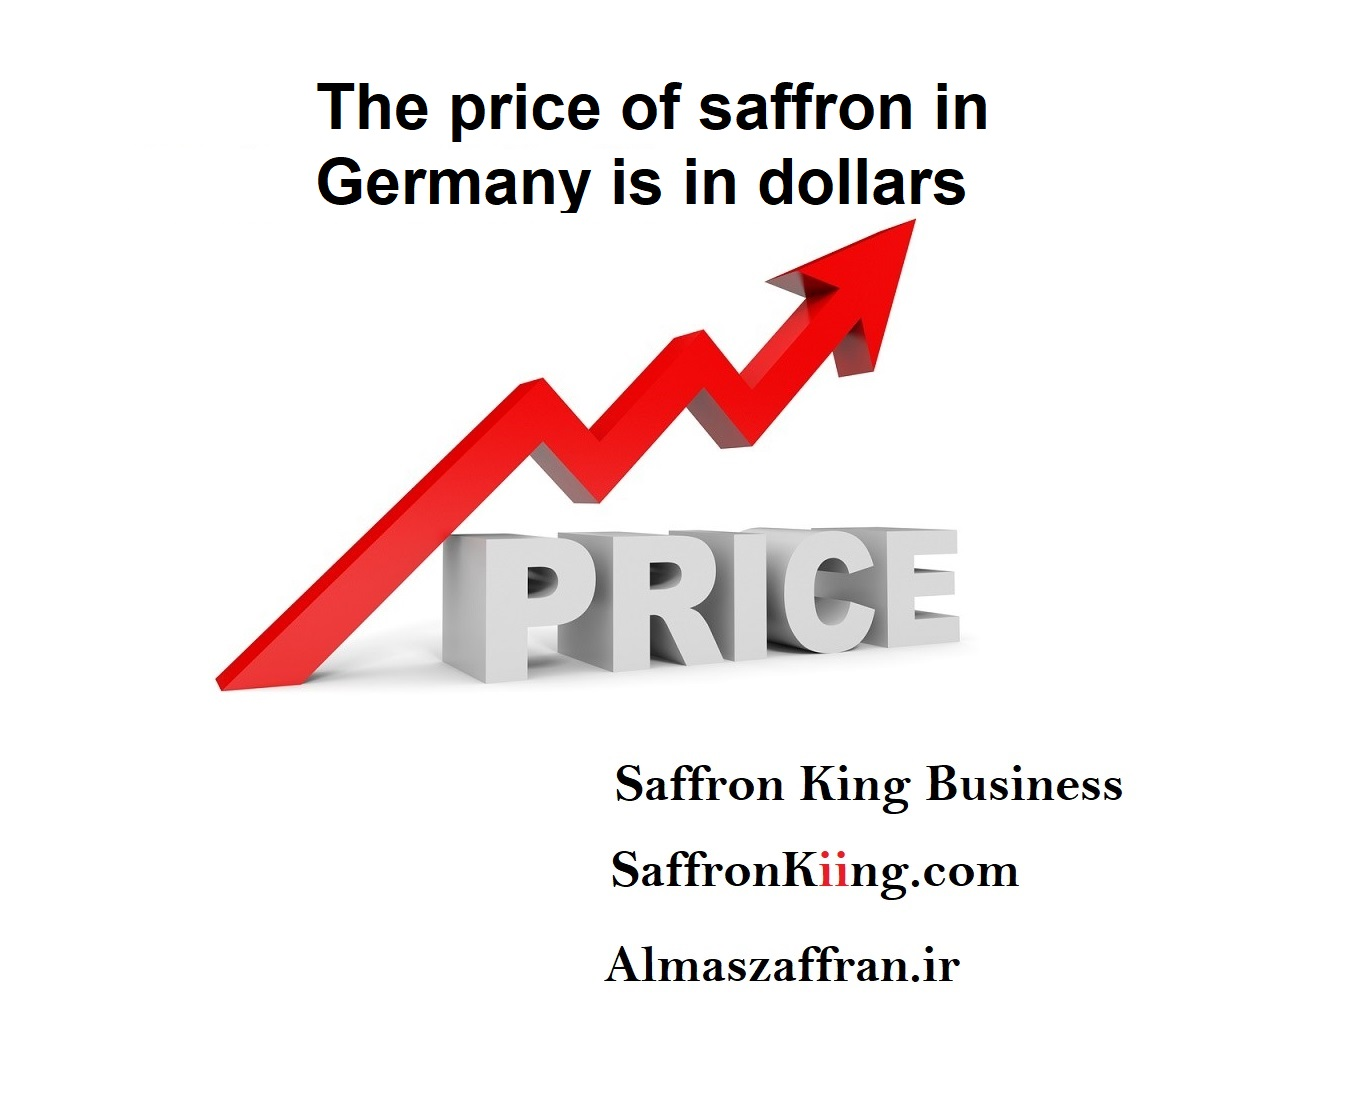 The price of saffron in Germany is in dollars